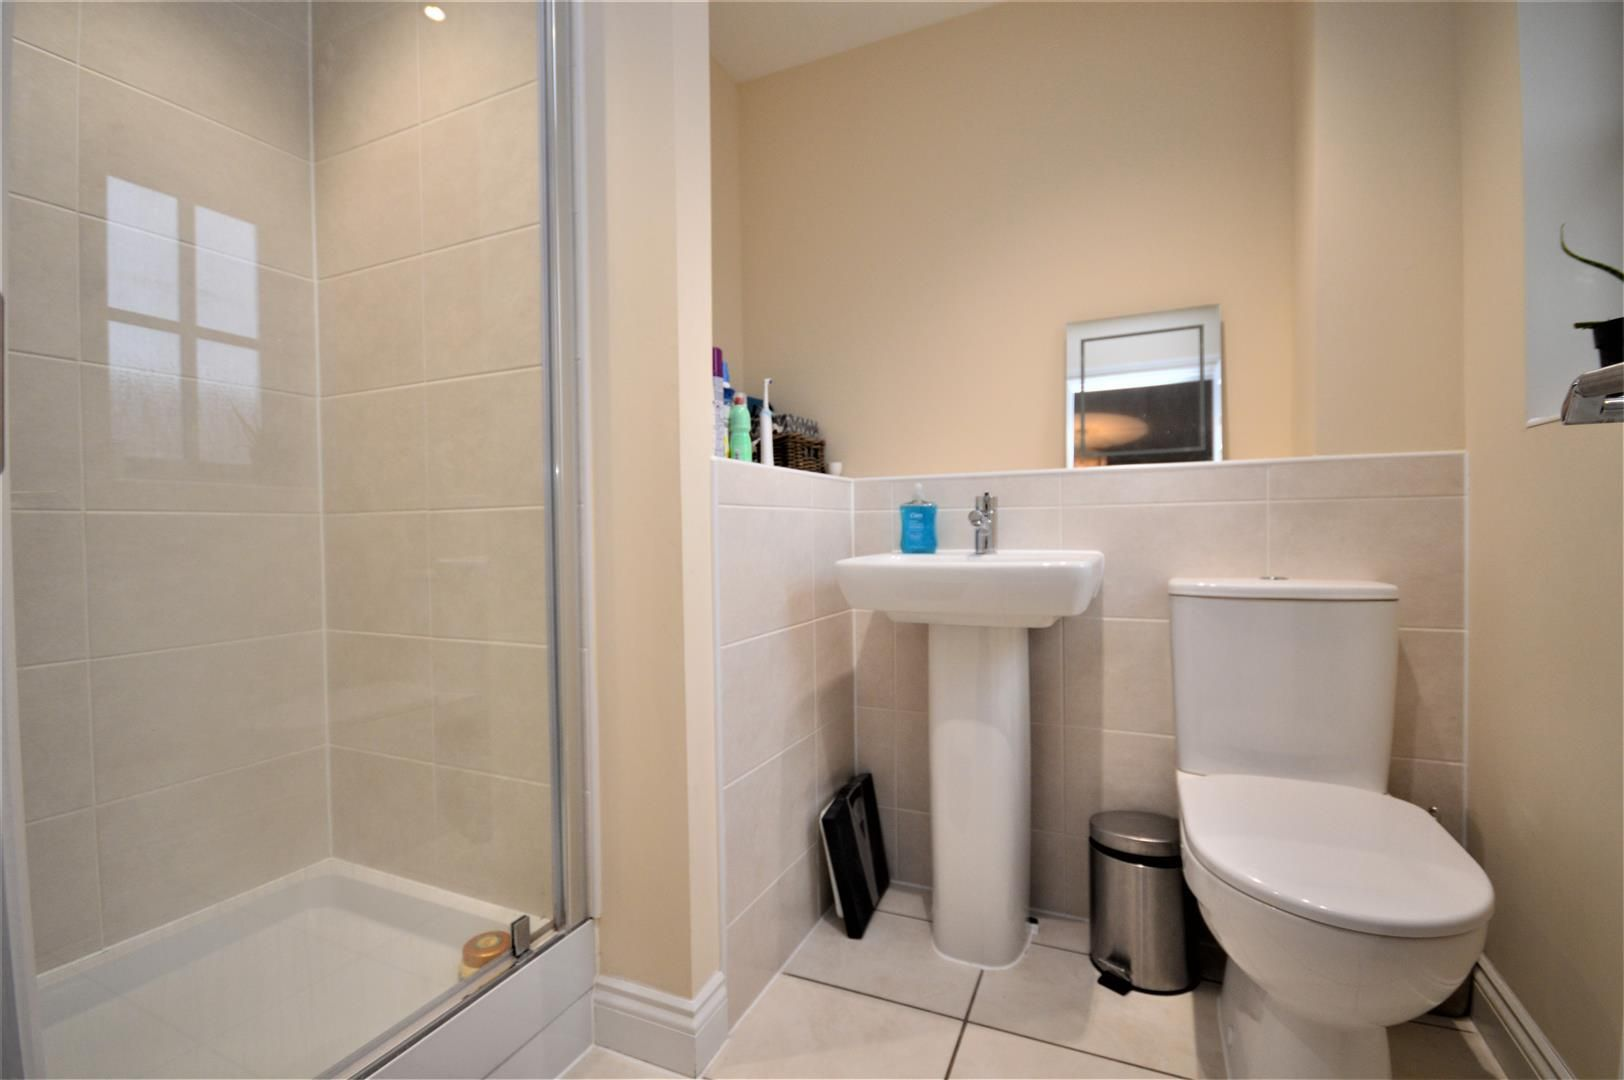 3 bed semi-detached for sale in Bodenham  - Property Image 11